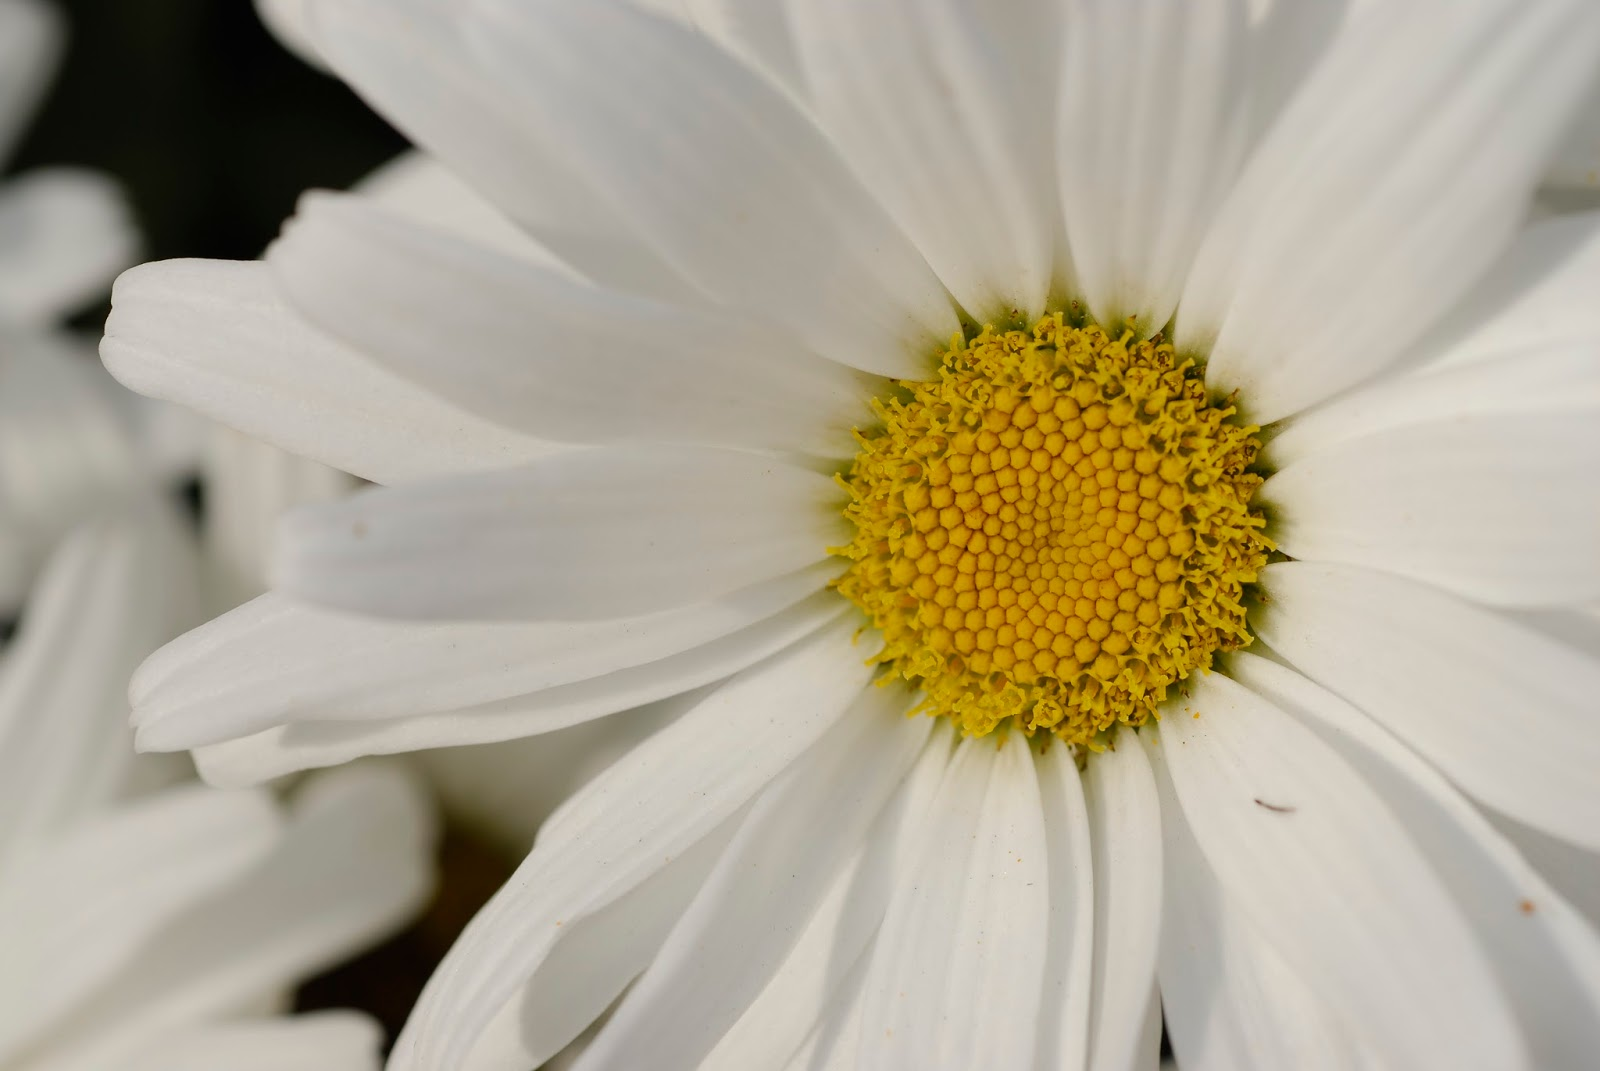 Floral boom a daisy simple but brilliant a daisy simple in its beauty but a lustrous brilliance in white the daisys meaning reflects purity and innocence so common a flower izmirmasajfo